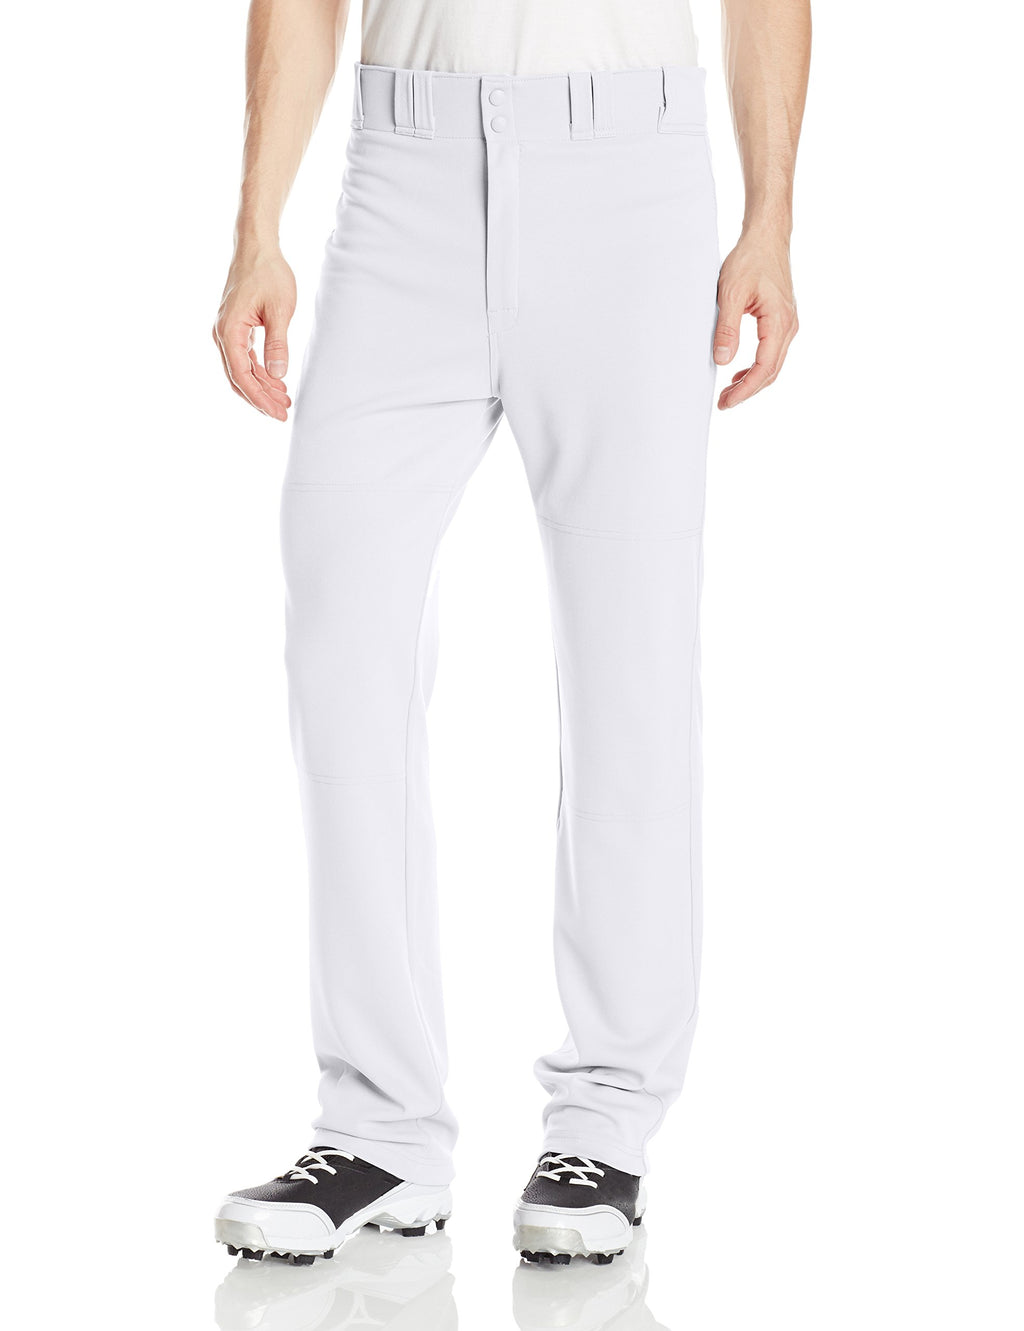 Copy of EASTON RIVAL 2 Baseball Softball Pant  | White | 2020 | Double Reinforced Knee | Elastic Waistband w/ 2 Color Internal Easton Logo | 2 Batting Glove Pockets | 100% Polyester - Ctfitnesswear